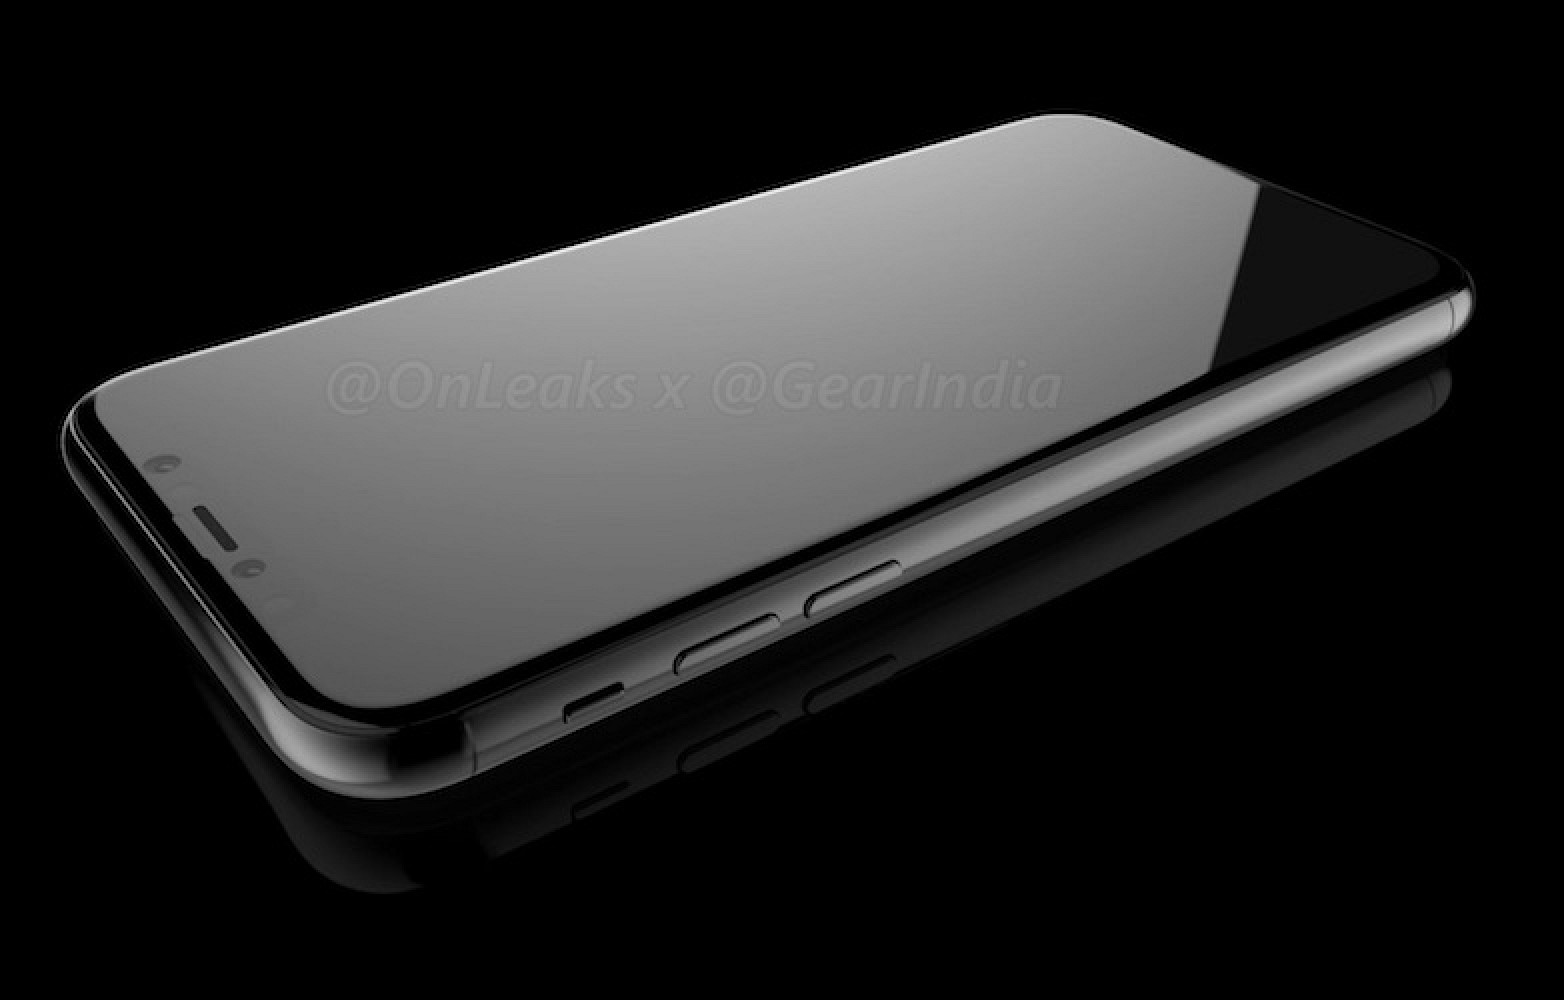 An iPhone 8 rendering based on leaked design schematics